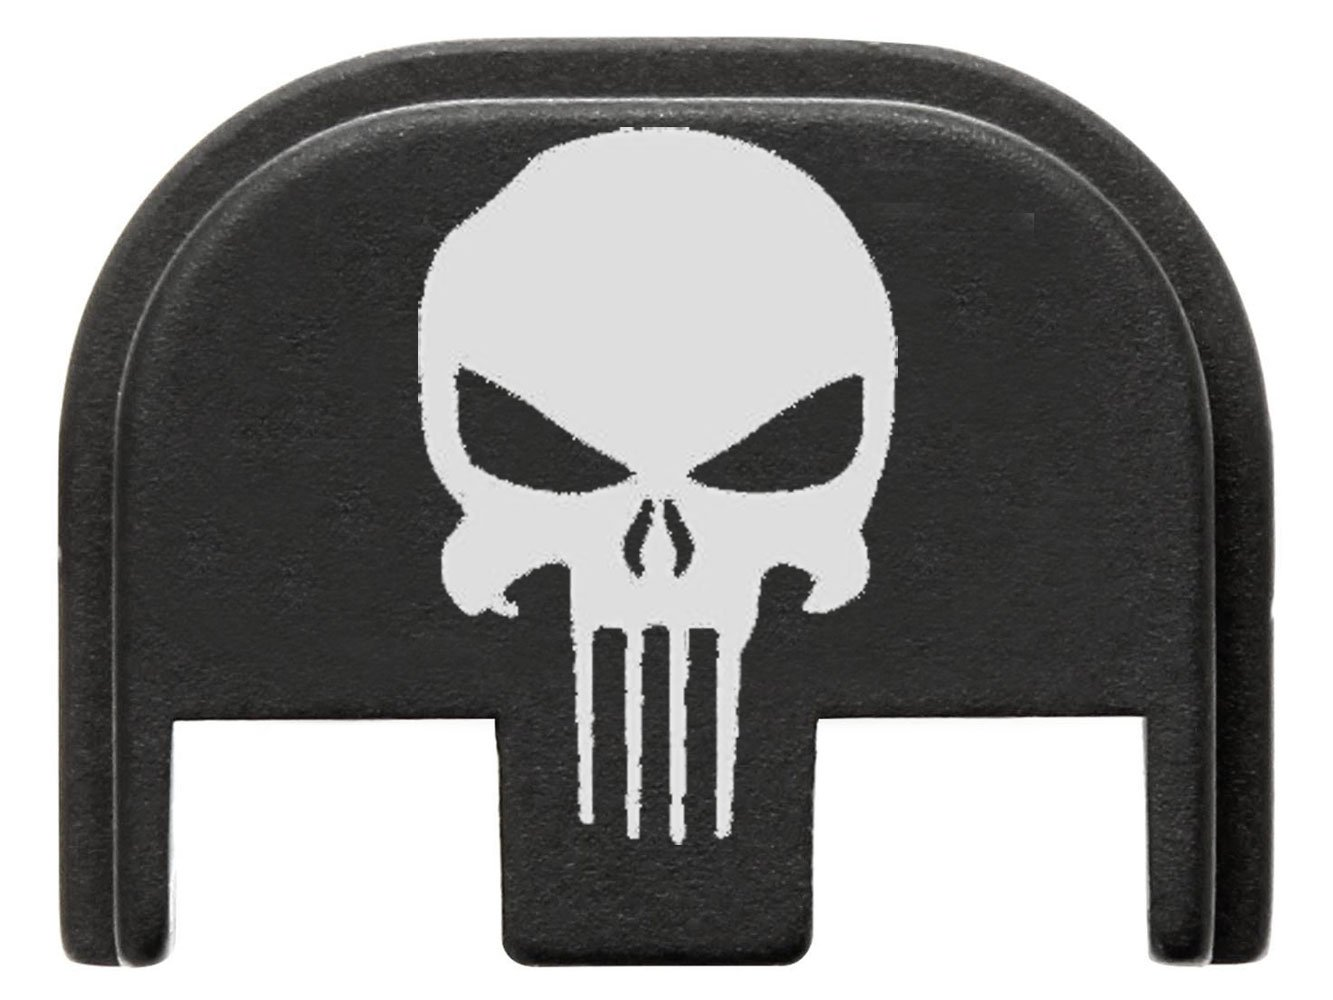 FIXXXER Gen 5 Rear Cover Plate for Glock (Tactical Skull design) Fits Most Models (Not G42, G43) Fits Gen 5 Only